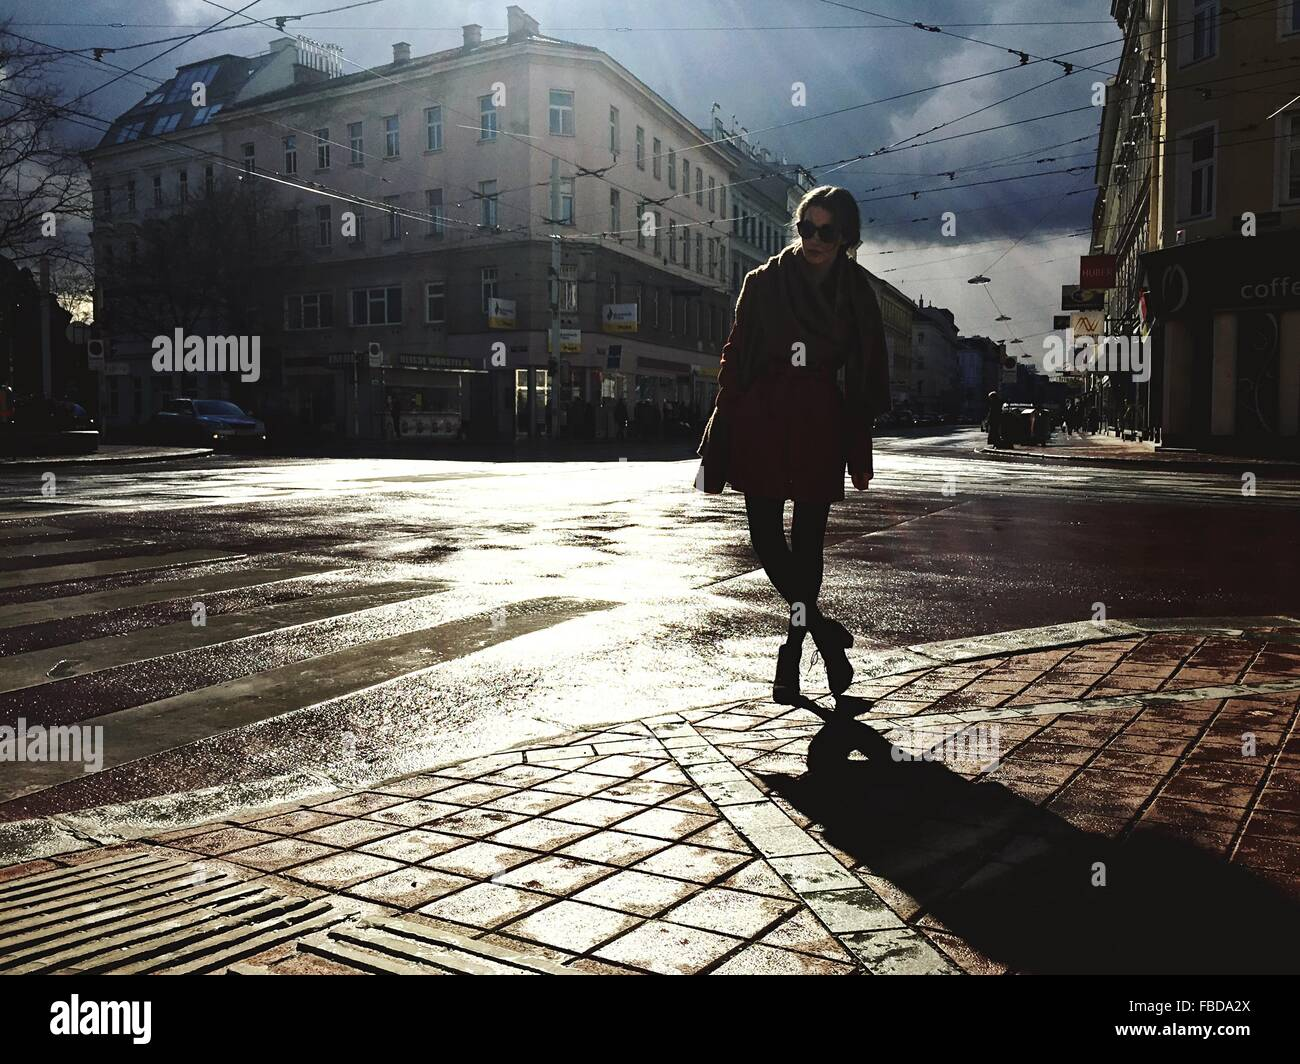 Woman Standing On Wet Street In City - Stock Image